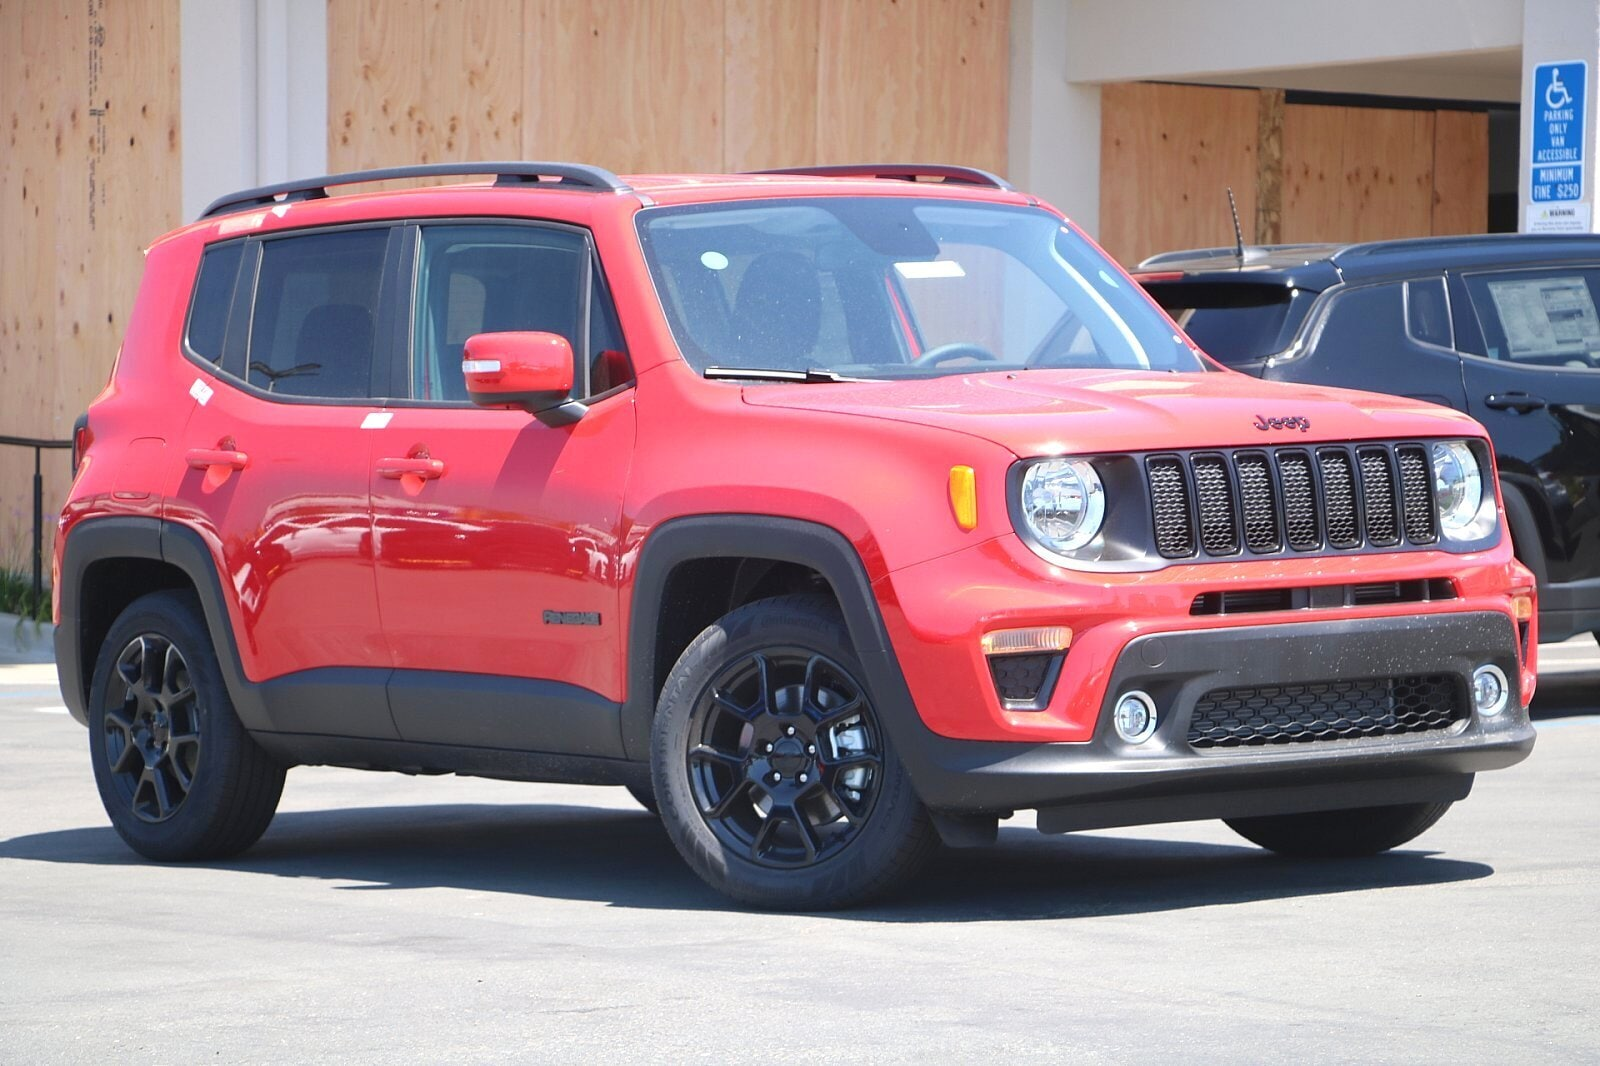 New 2020 Jeep Renegade Altitude Fwd For Sale Or Lease In Richmond Ca J11094 Serving Berkeley Oakland San Franciso